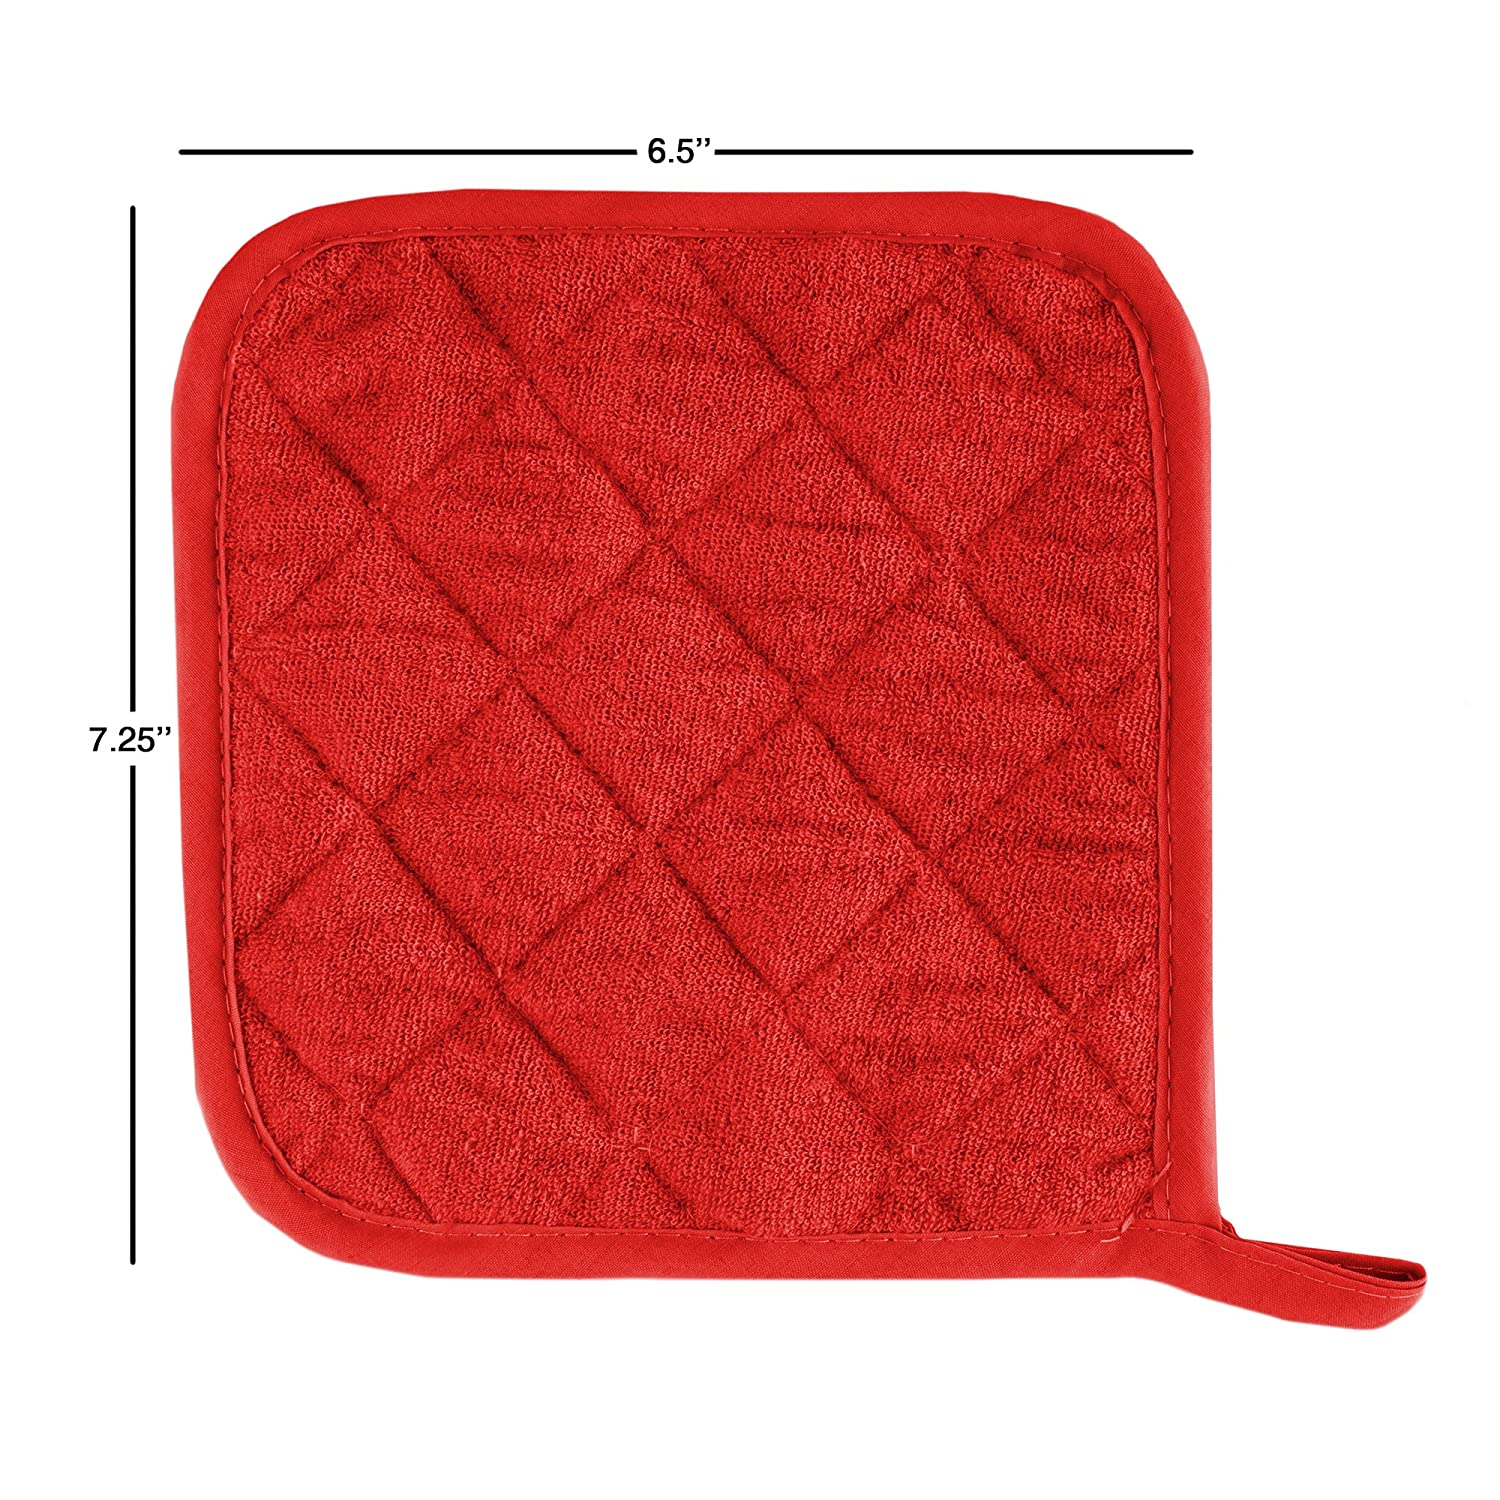 537bb6d48bf Lavish Home Pot Holder Set with Silicone Grip